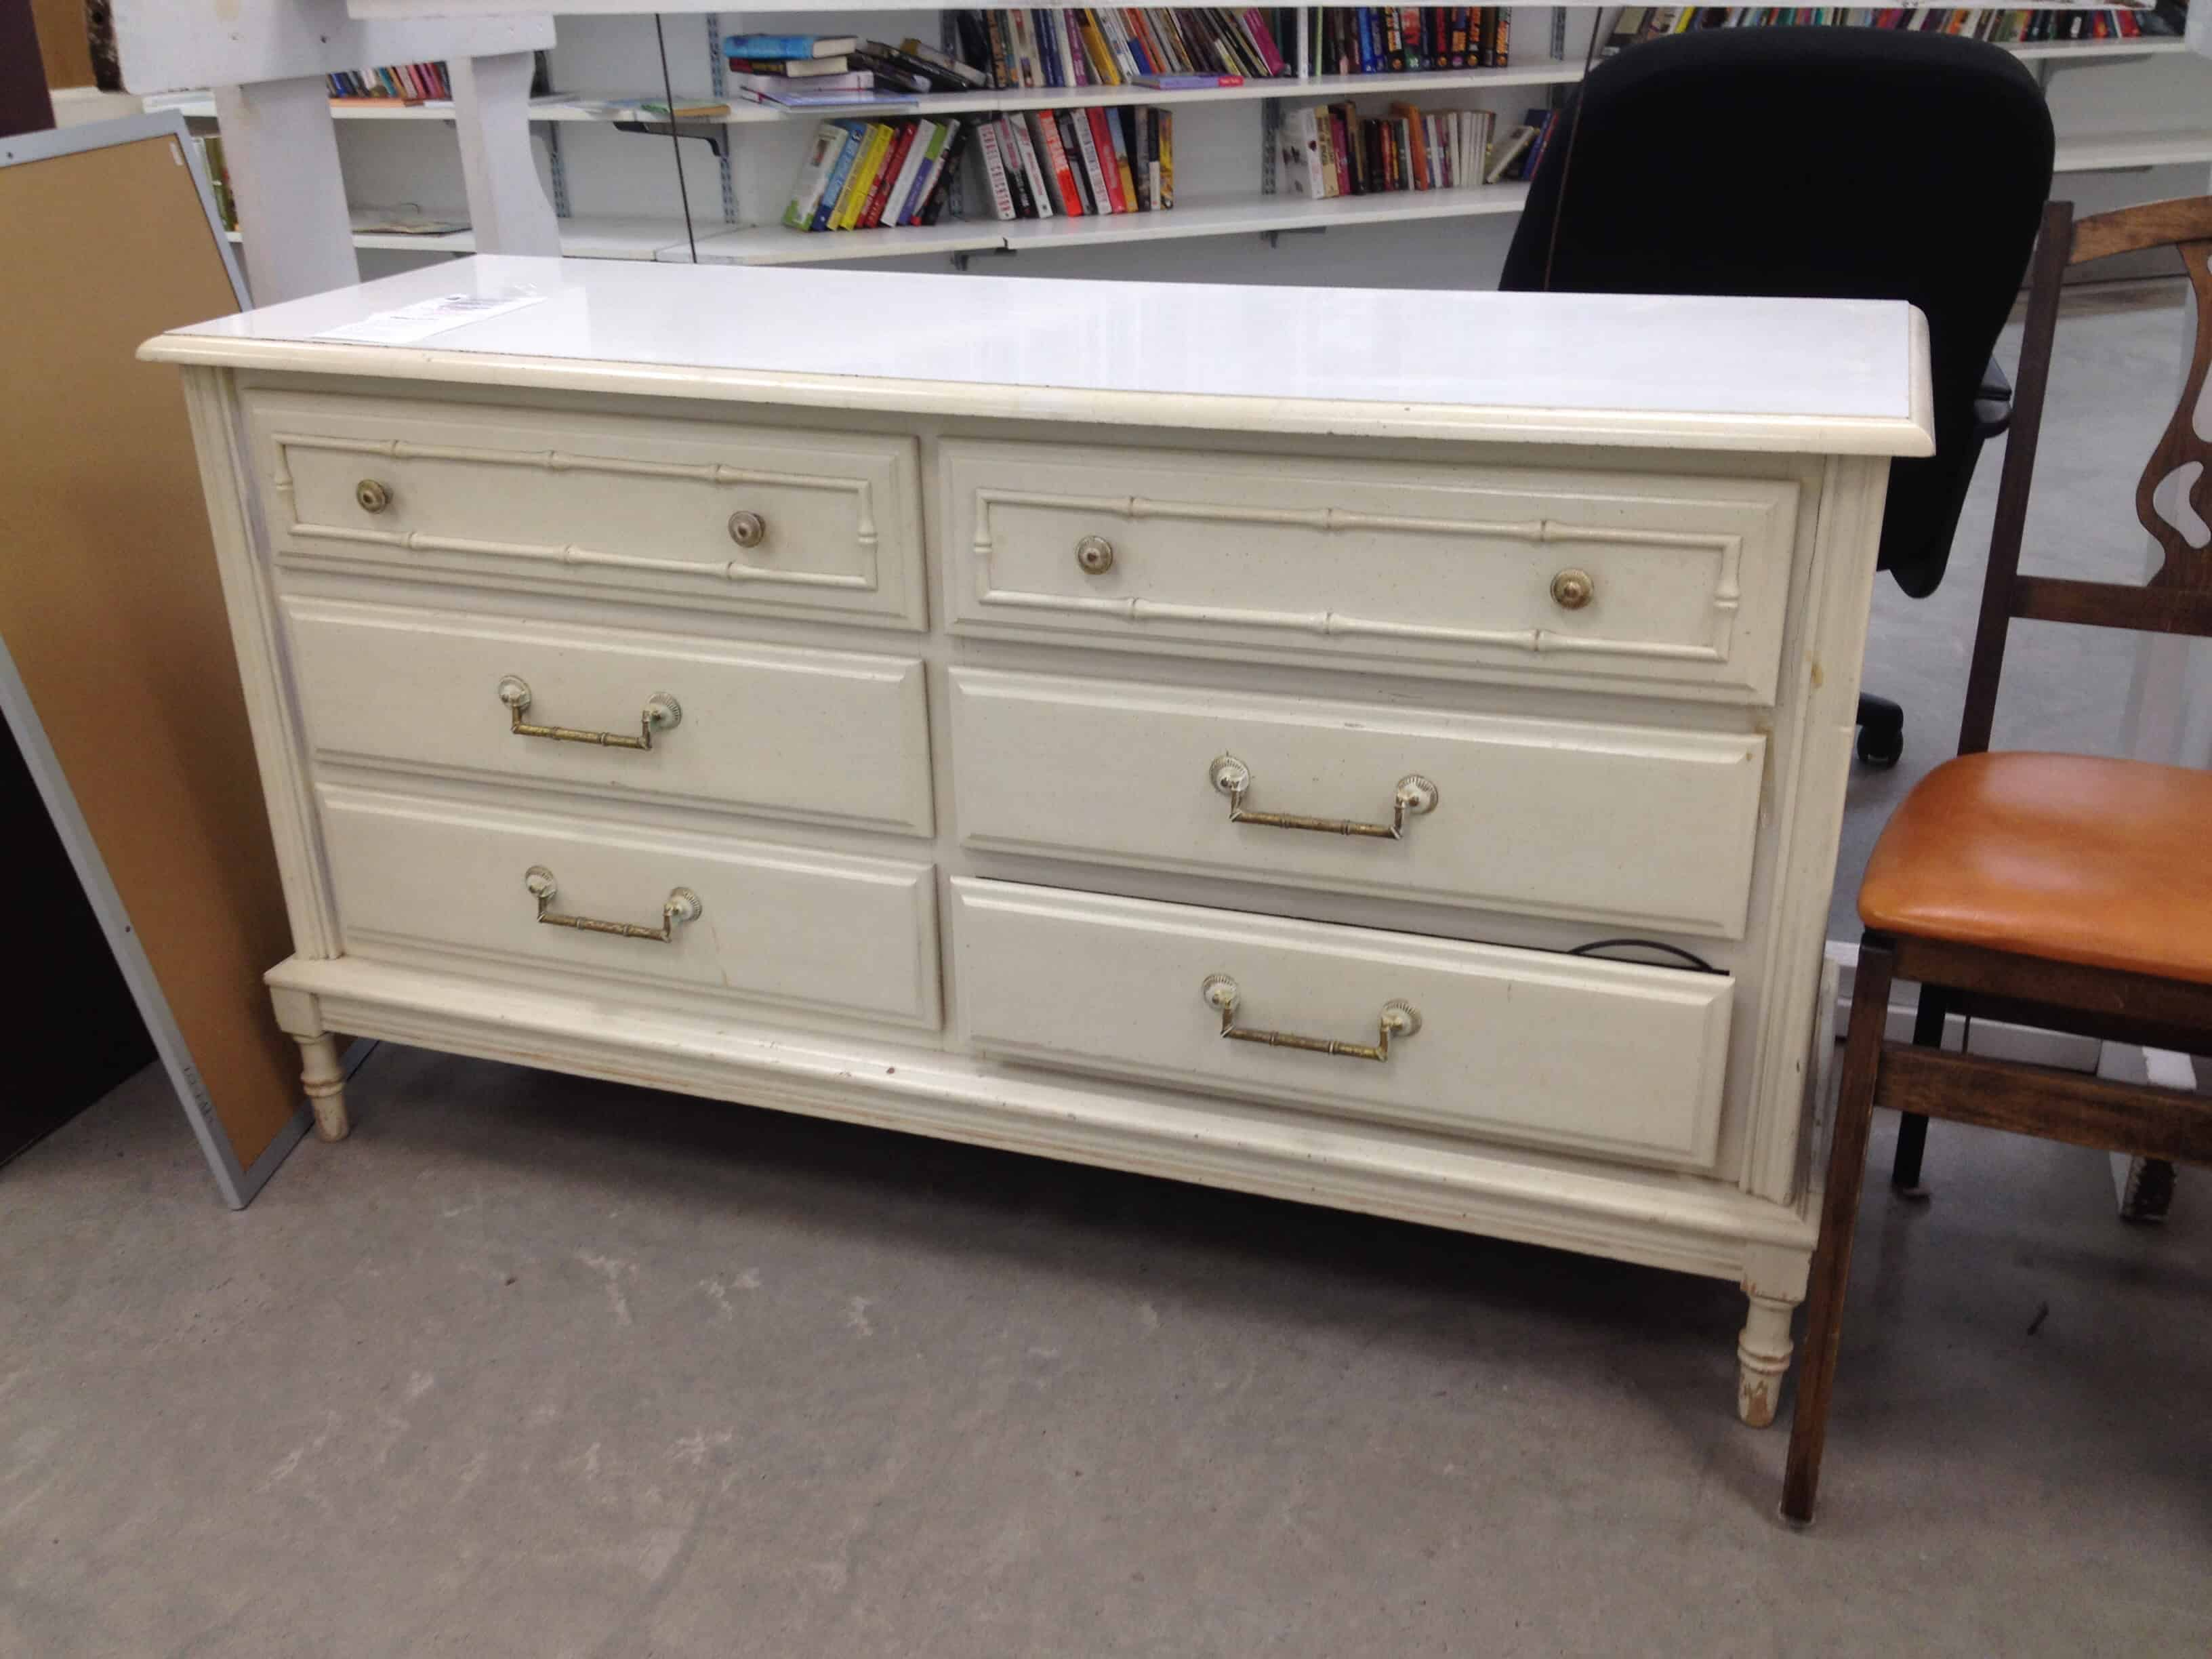 100 Goodwill Furniture Donation How To Donate To Goodwill Pocket Sense Best Charity To